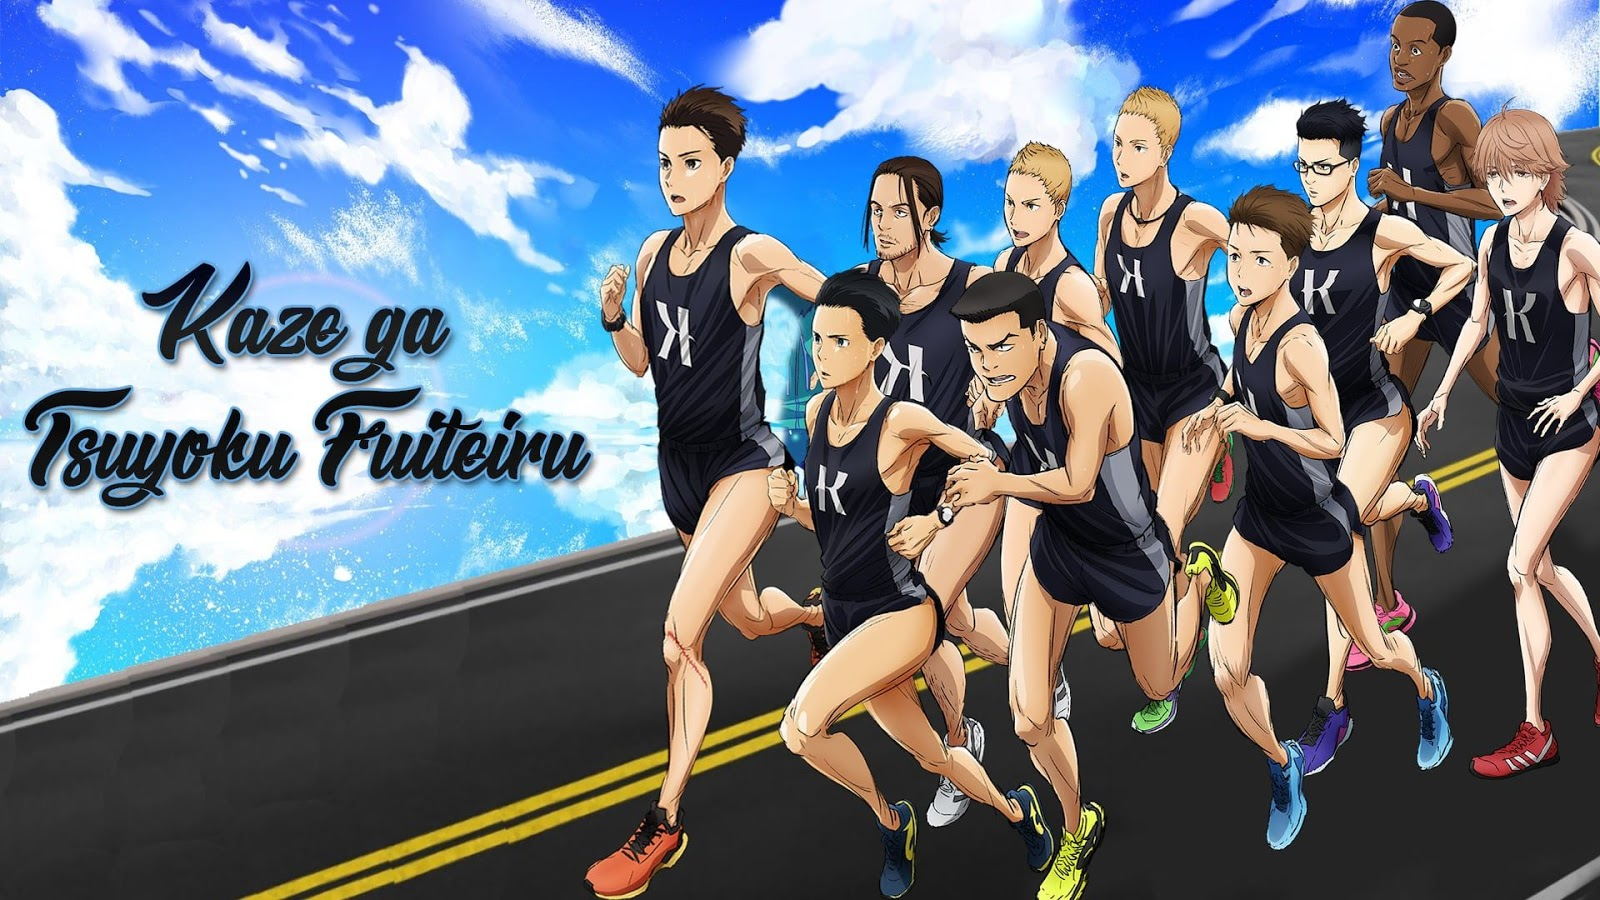 Kaze Ga Tsuyoku Fuiteiru Run With The Wind Episode 14 Detailed